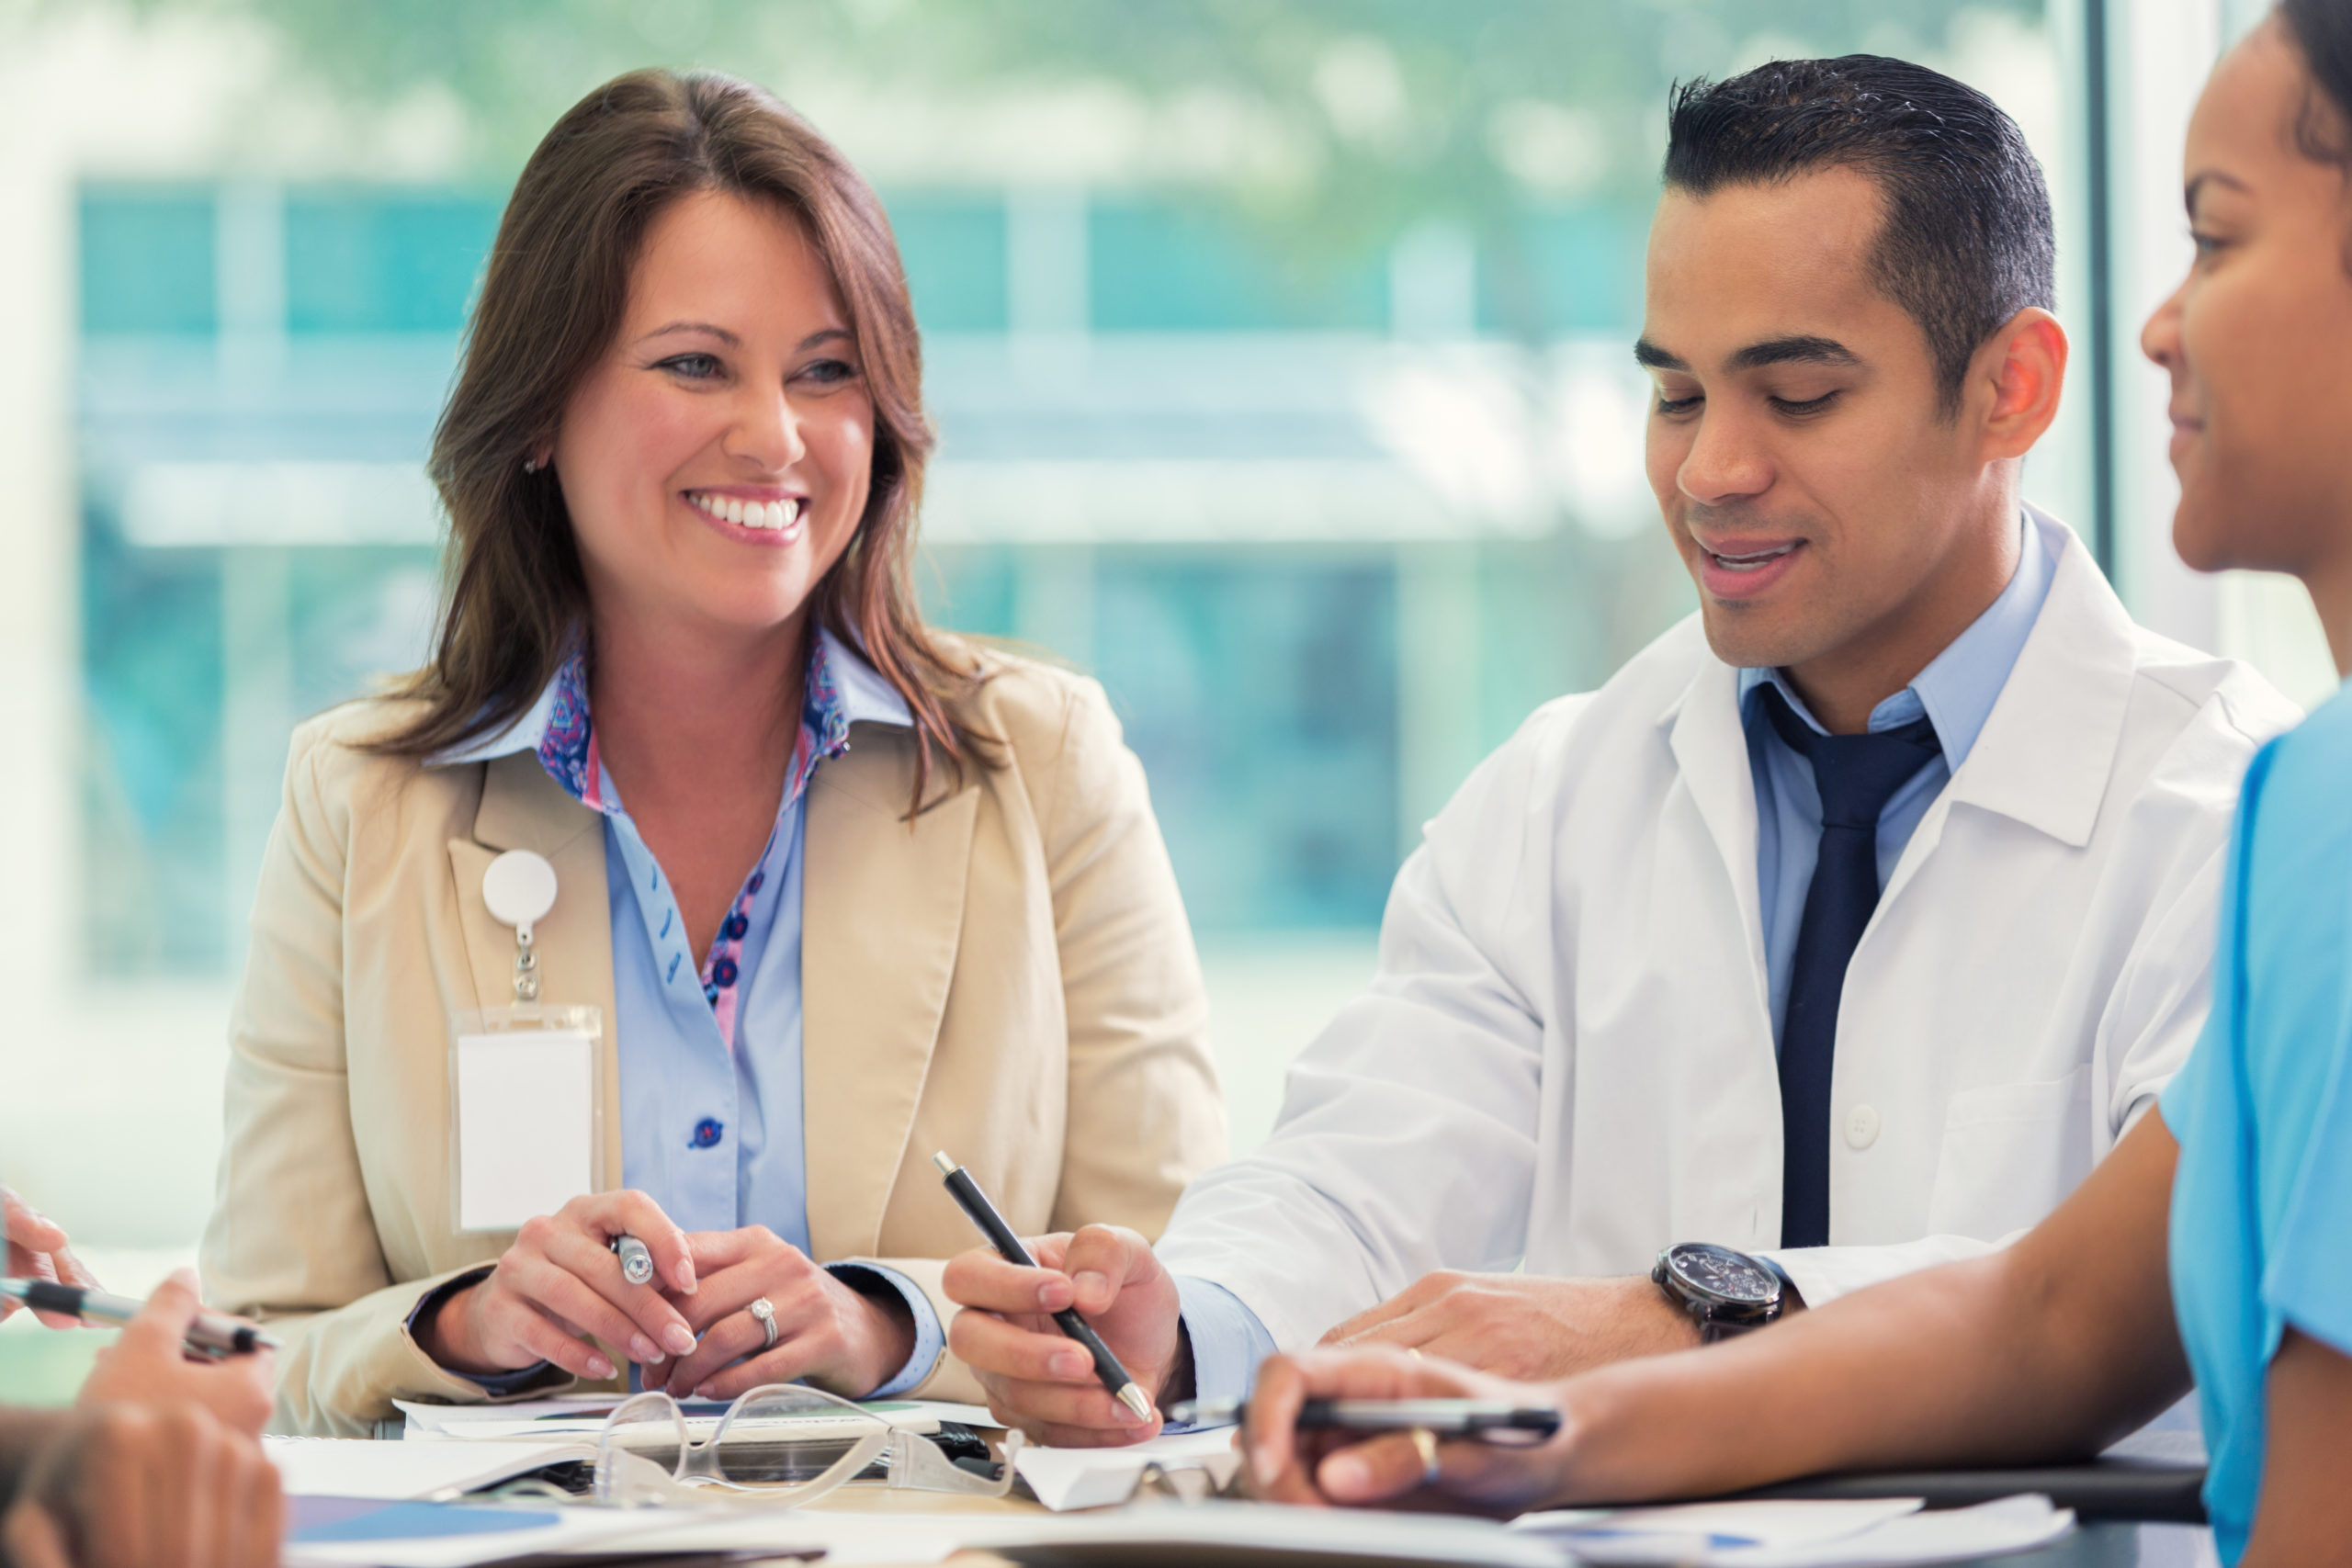 Mid adult Hispanic doctor and mid adult Caucasian female hospital administrator discuss hospital policy and procedures during staff meeting.